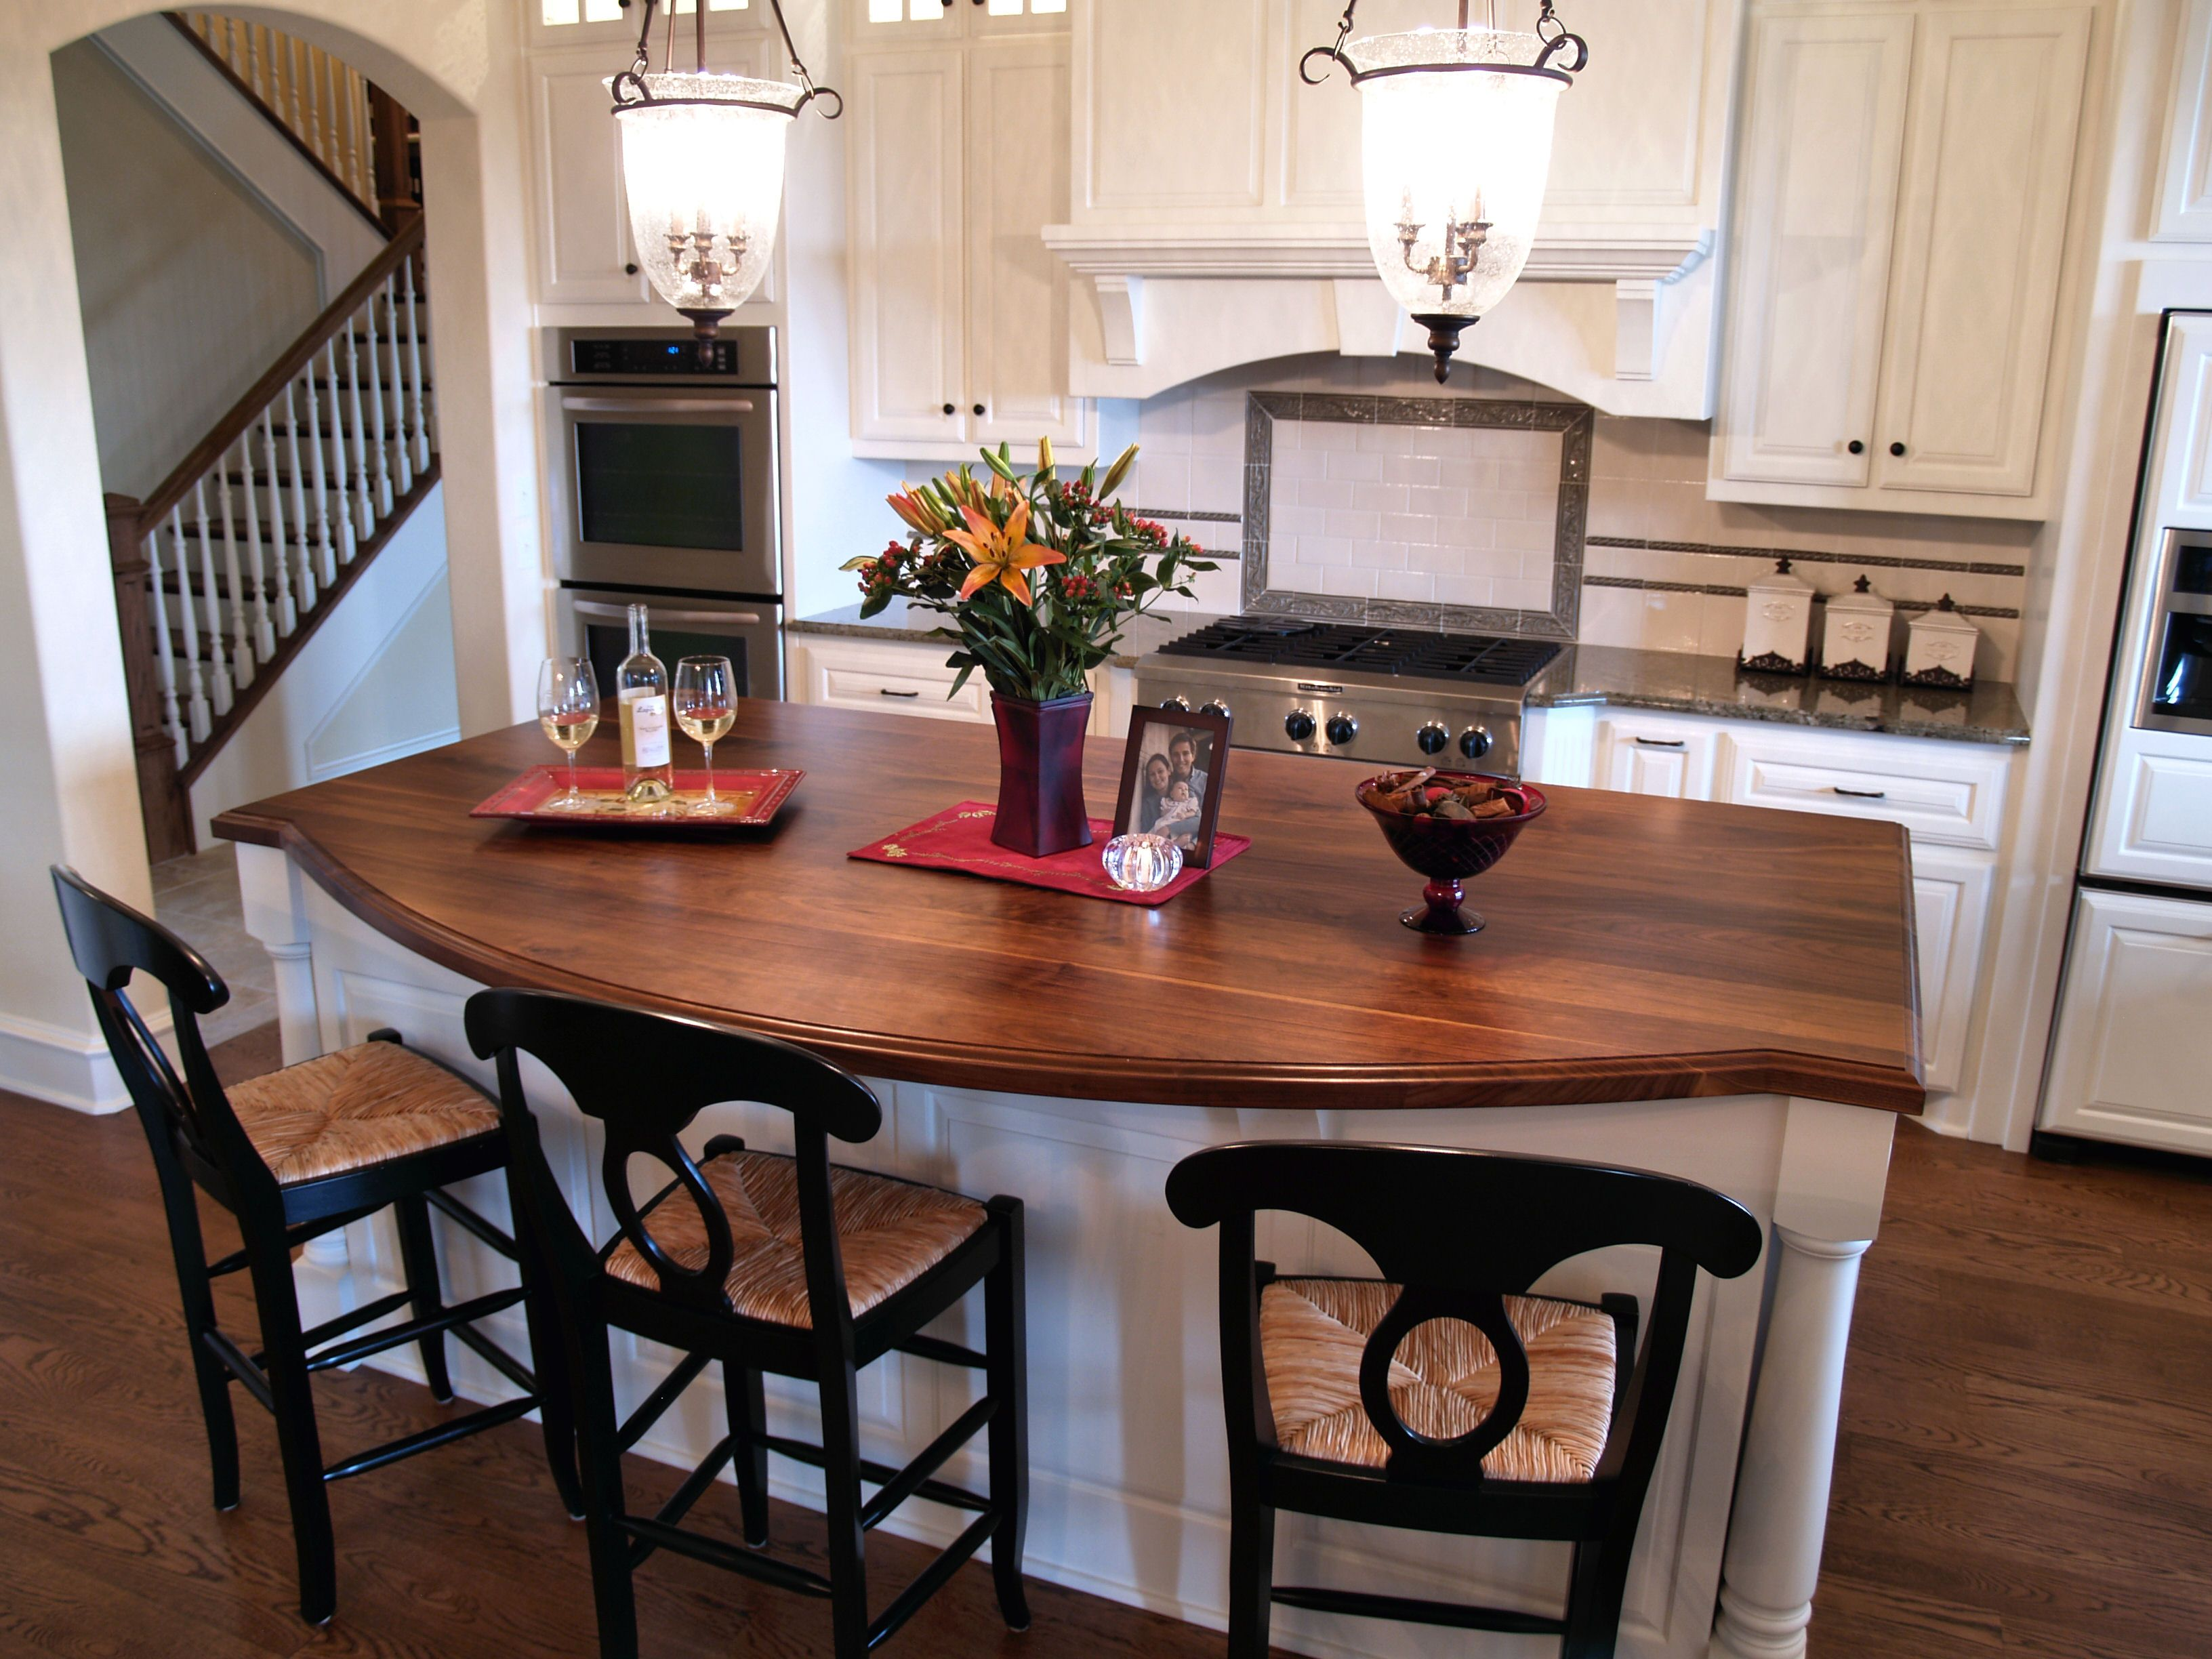 Butcher Block Tops For Kitchen Islands : Walnut Wood Countertop Photo Gallery, by DeVos Custom Woodworking